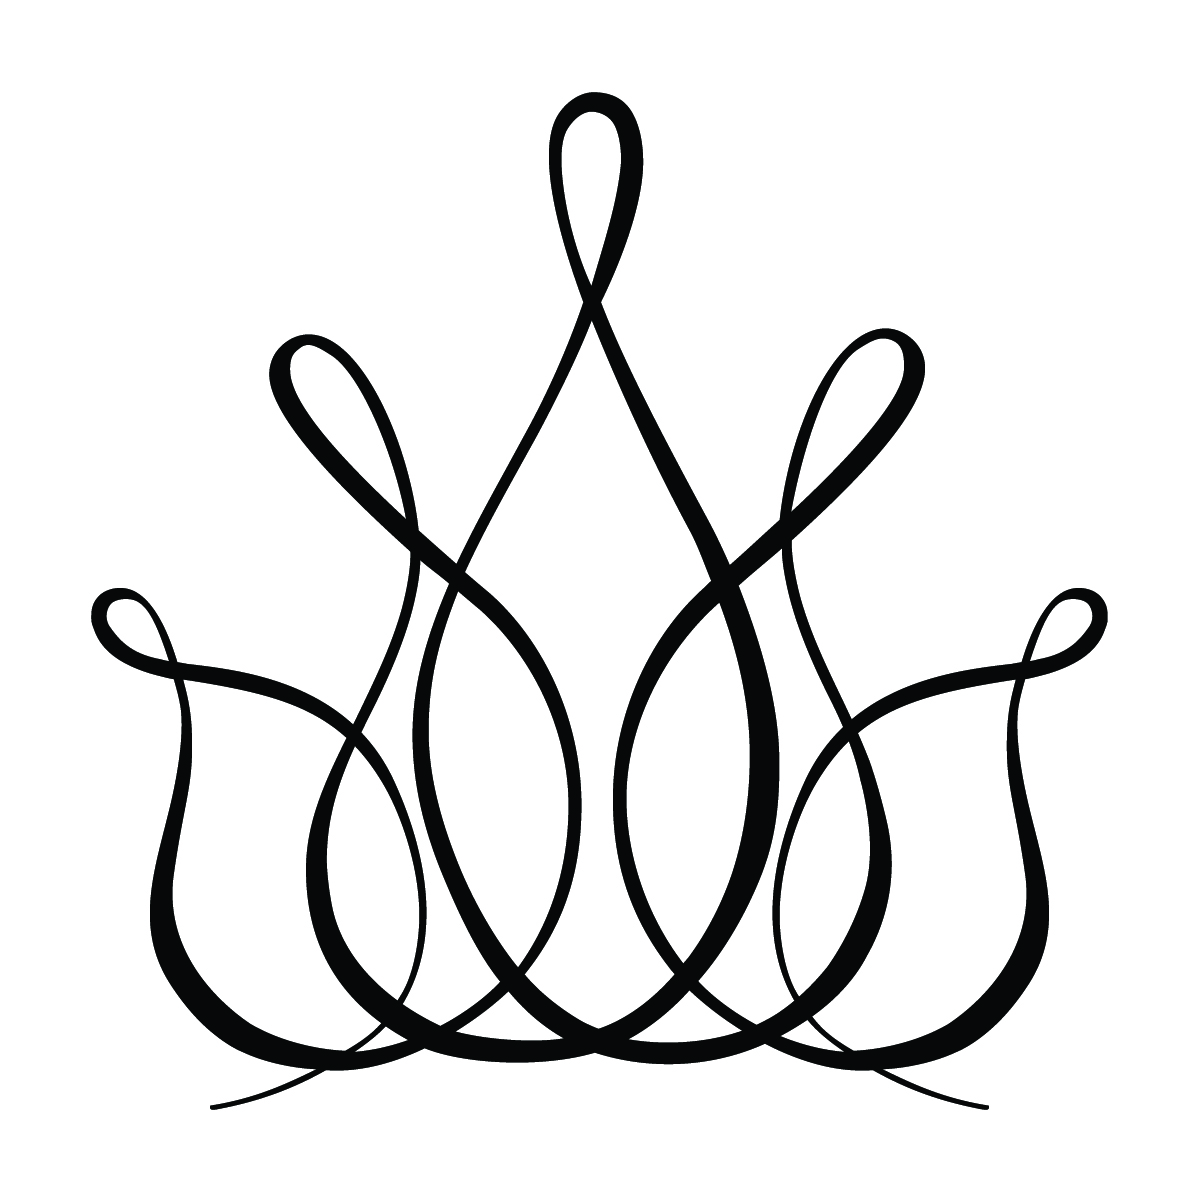 Queen Crown Clipart Black And White 20 Free Cliparts